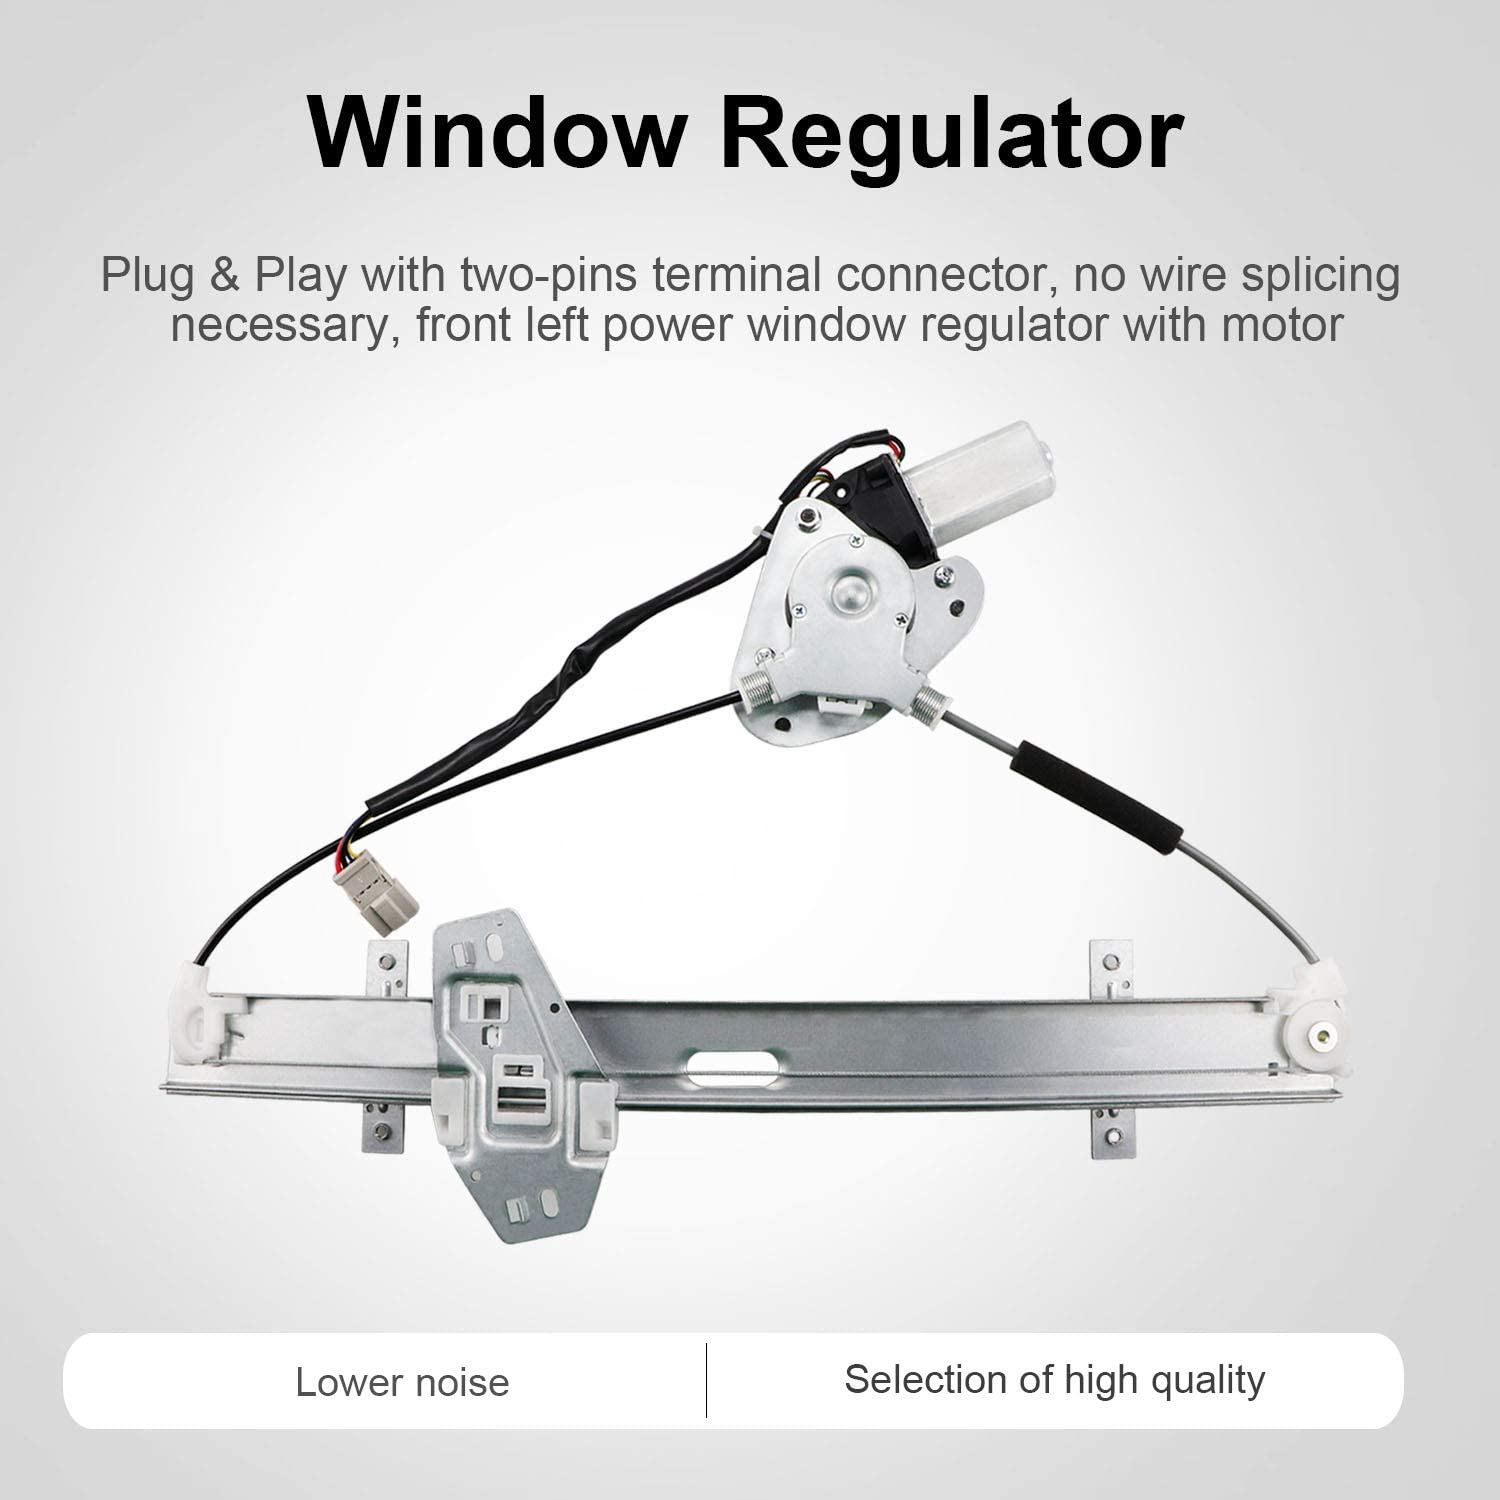 Front Left Driver Side Power Window Regulator with Motor for 1998 1999 2000 2001 2002 Honda Accord 72250S84A02 11A175 212-0001 47-1567 744-766